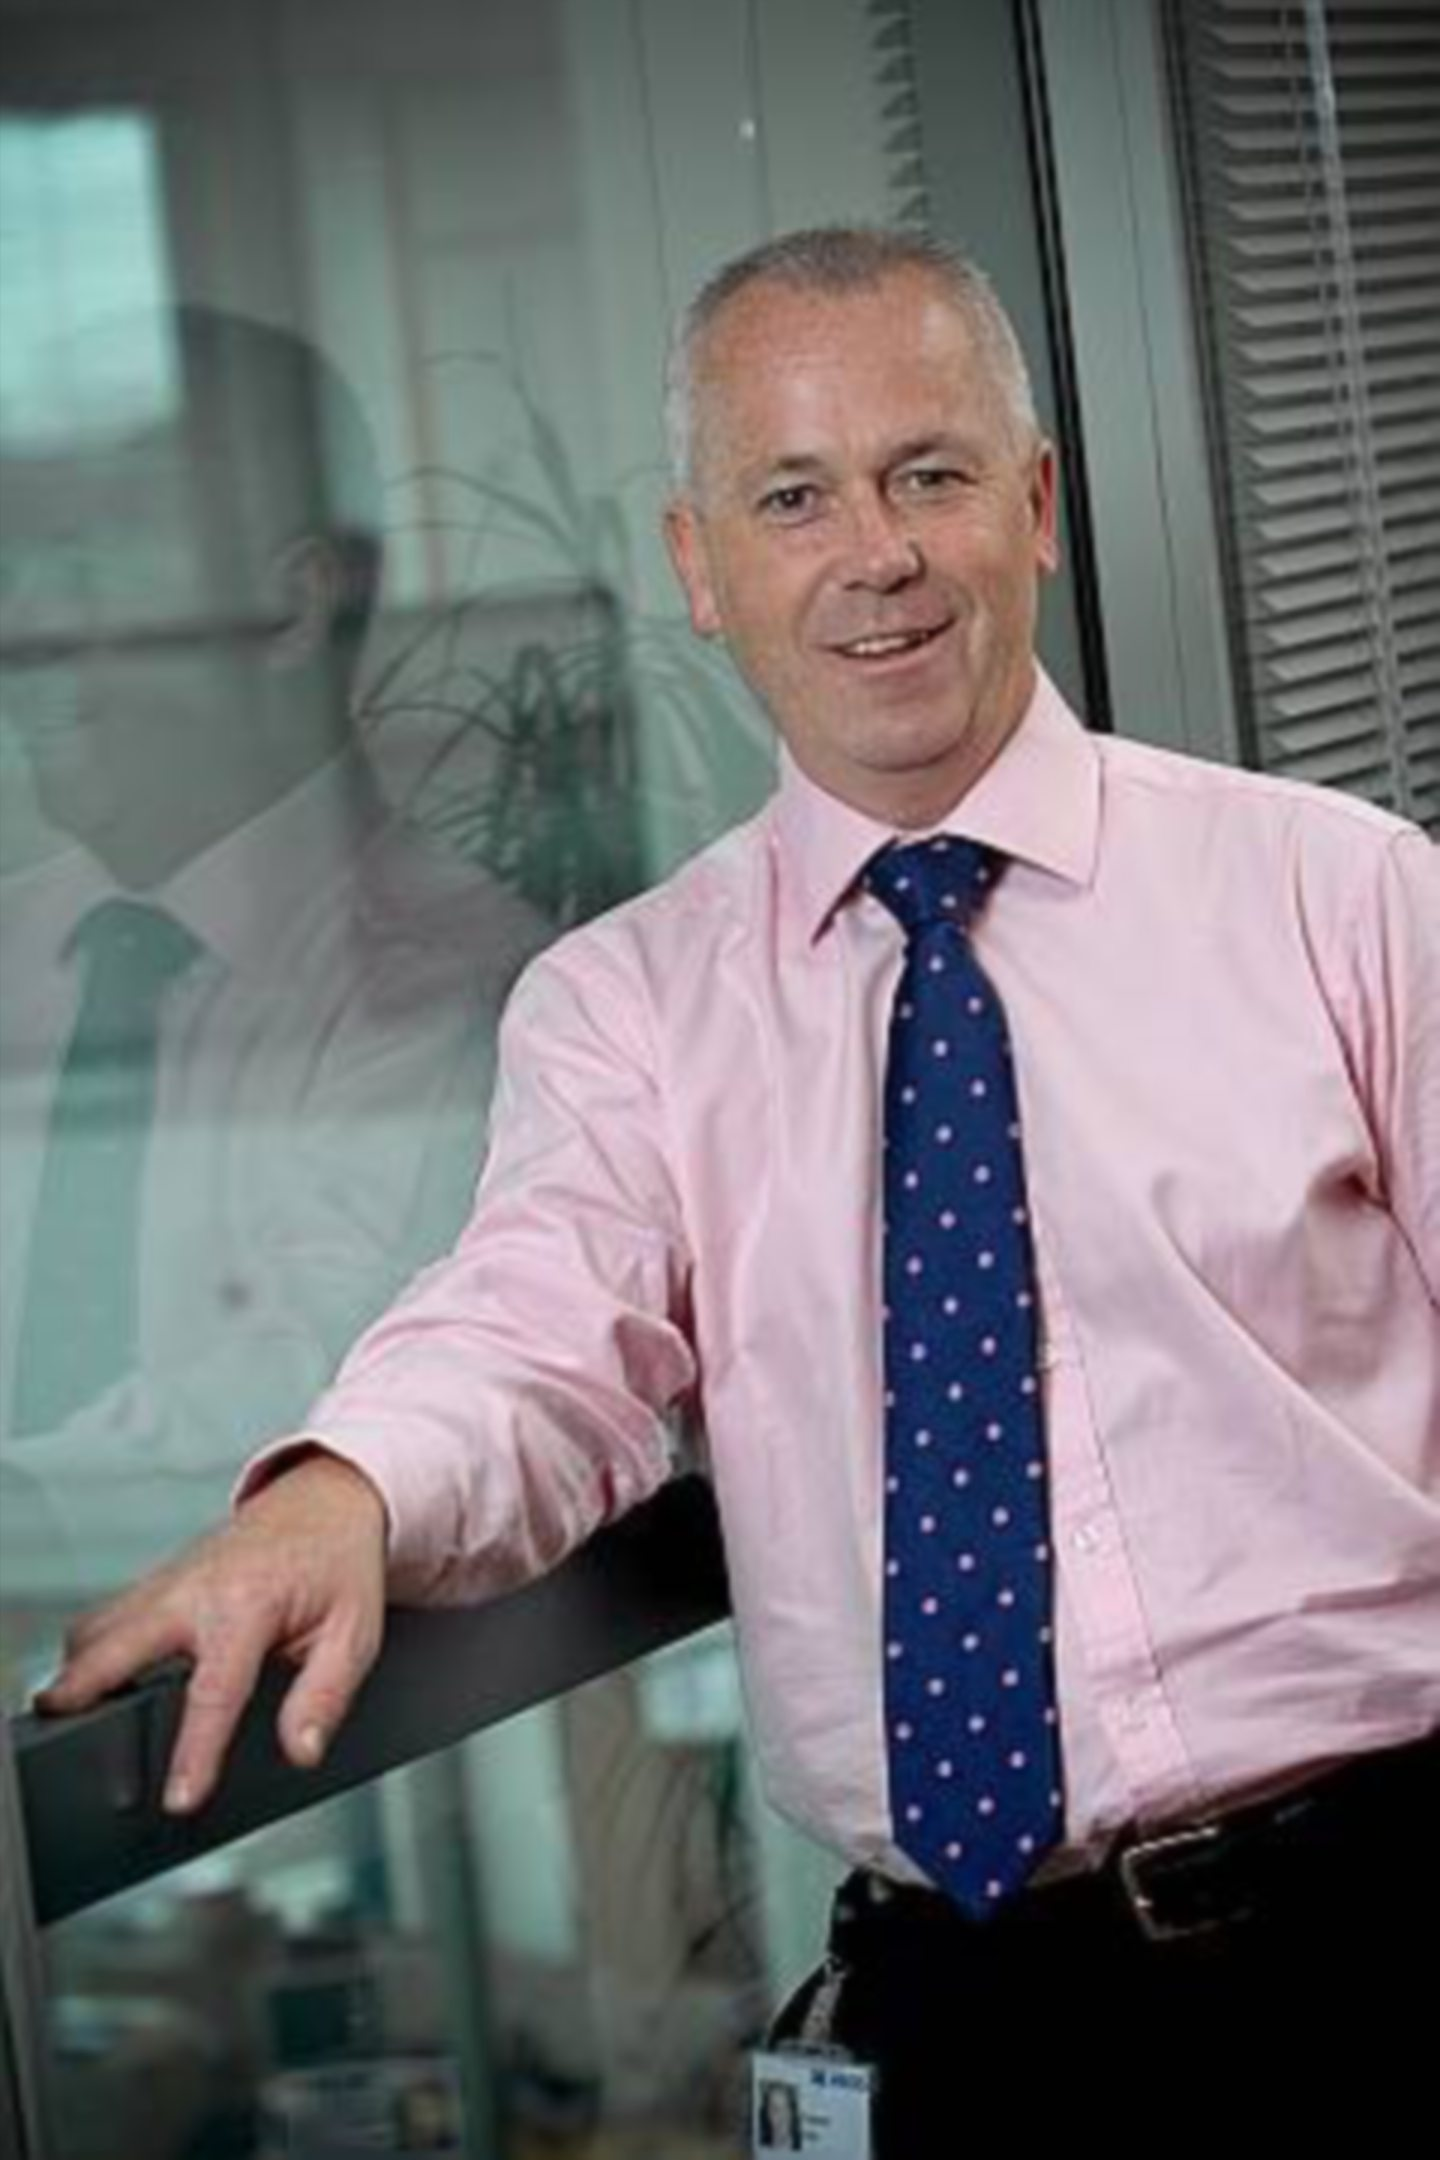 Graham Blair, mortgages director for Bank of Scotland